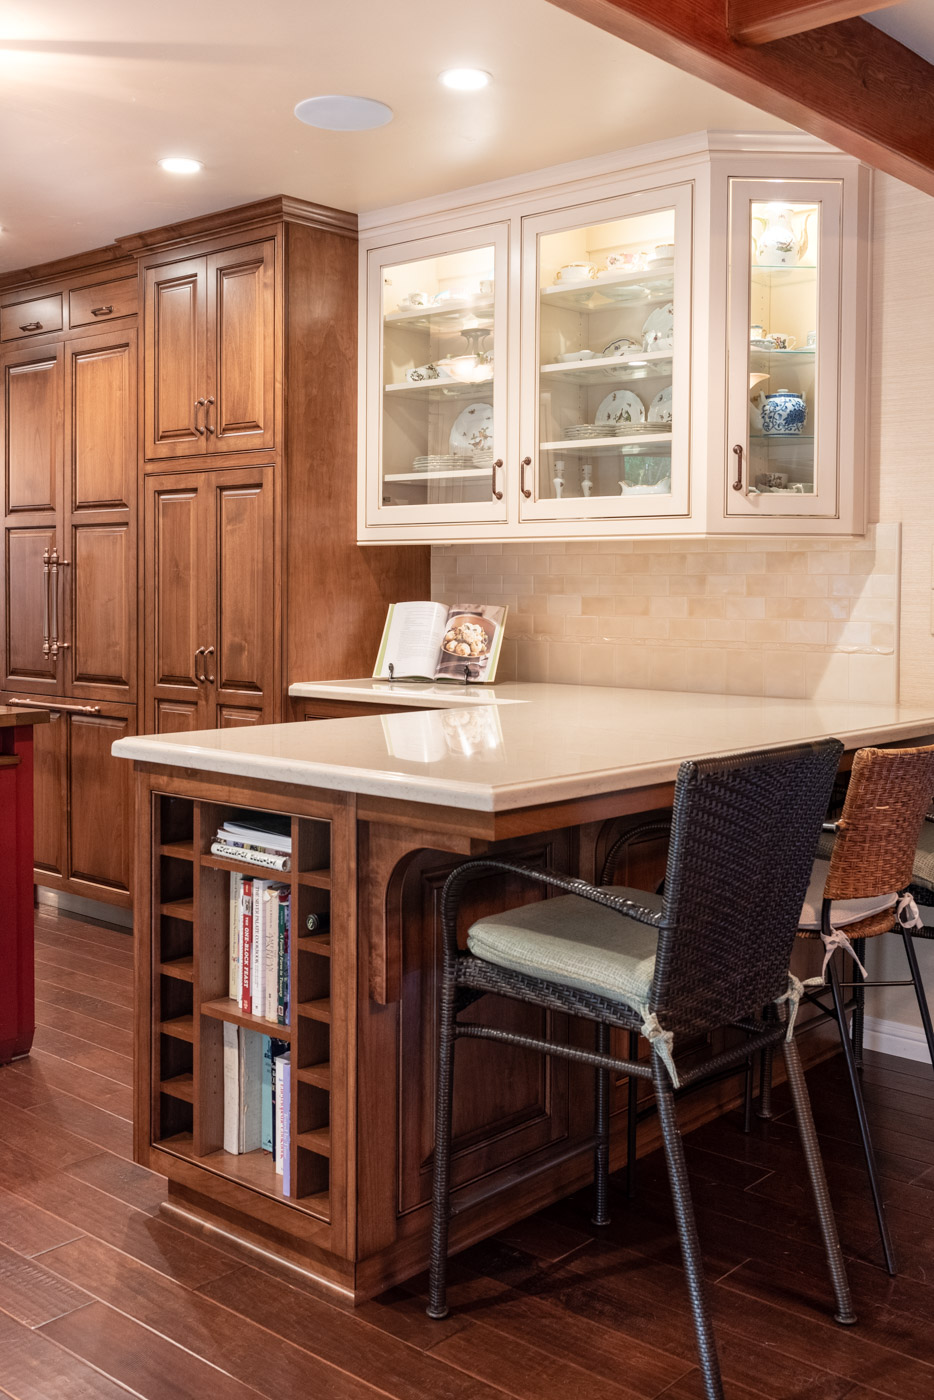 English Country custom kitchen cabinets with peninsula wine rack and open shelves